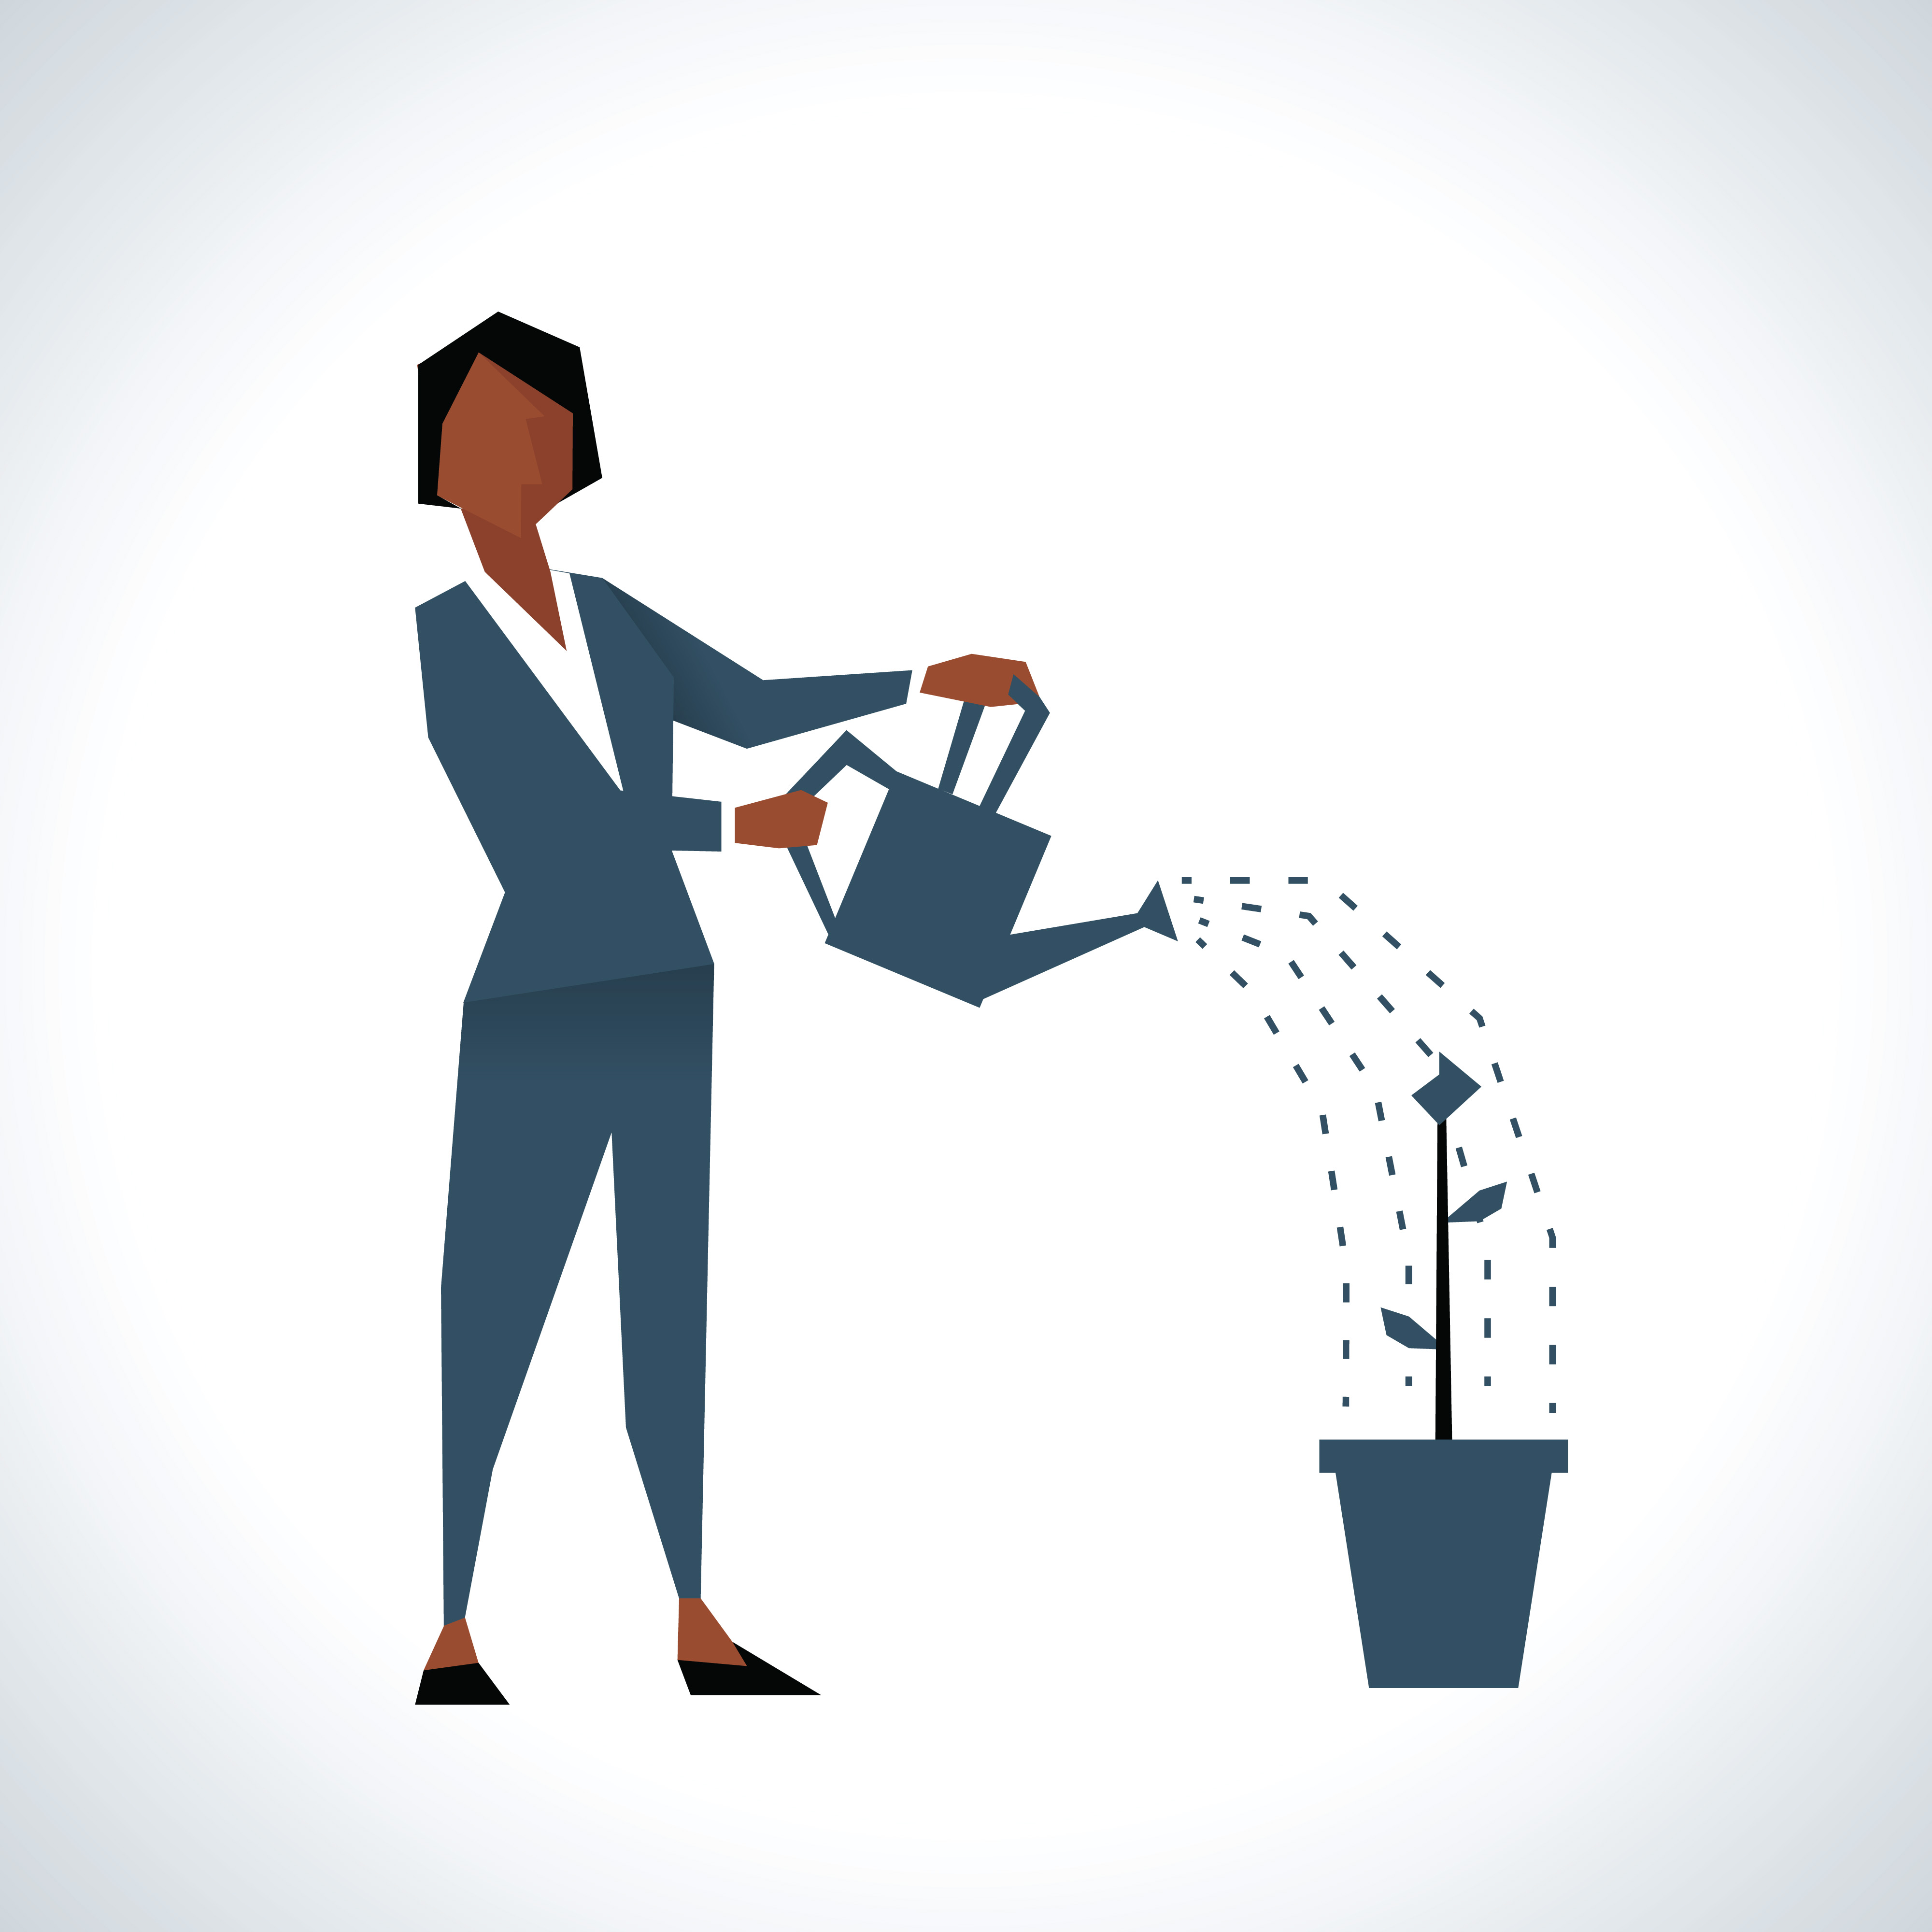 Nurturing Leads to Grow Your Home Care Client Base